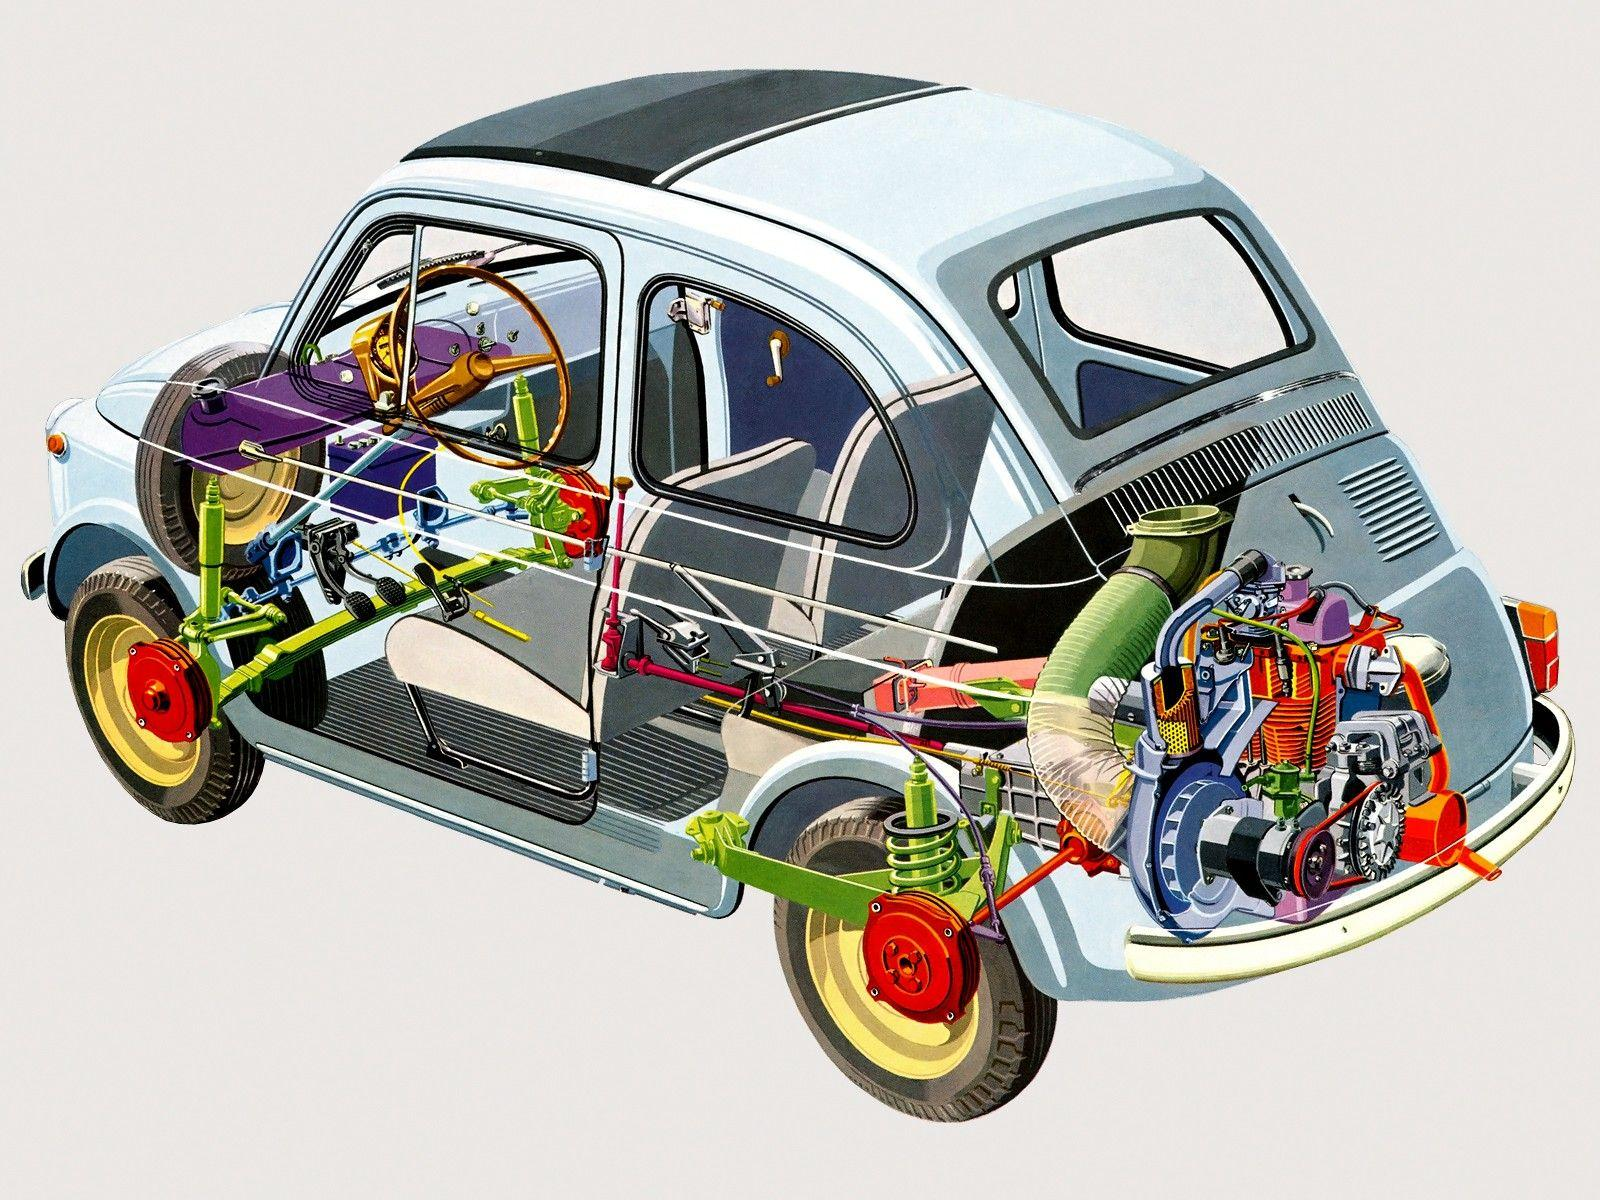 Fiat 500: The tech behind the icon